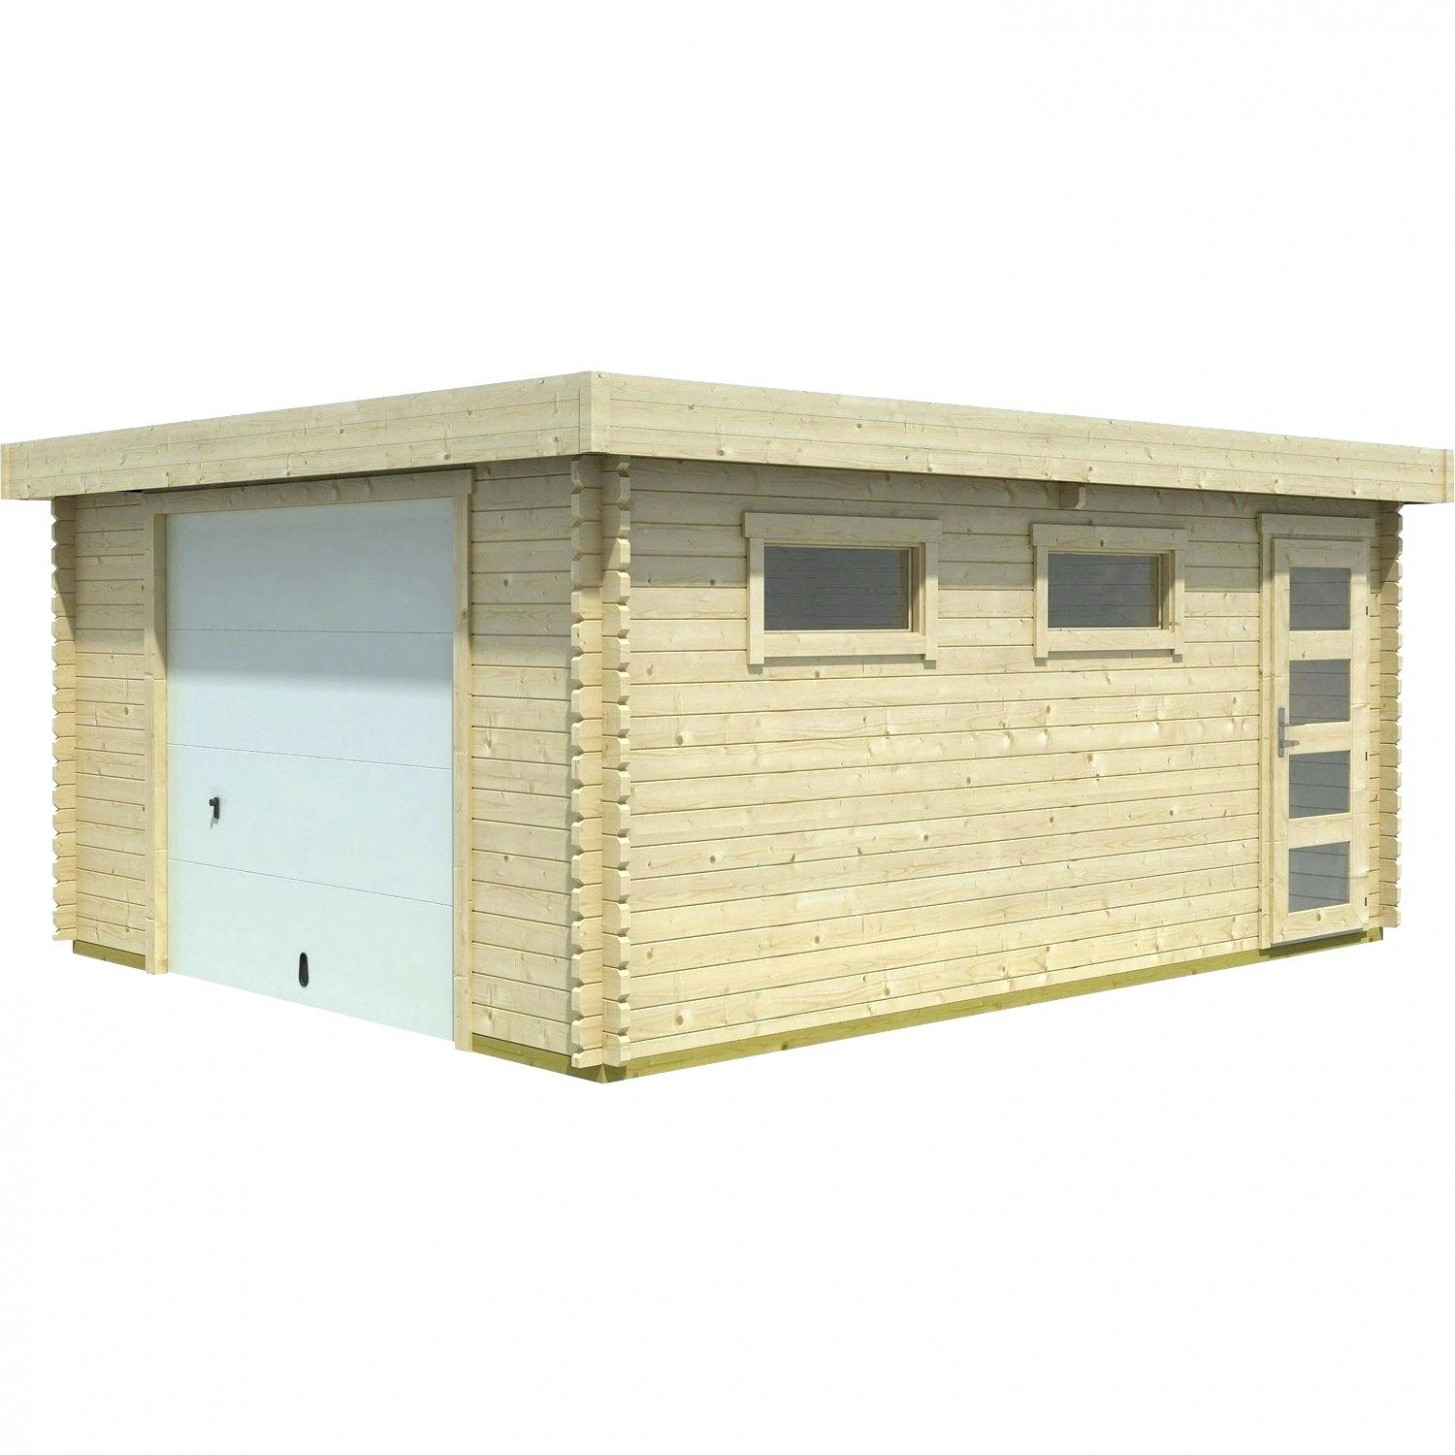 Wood Carport Plan Wooden Carports Wood Carport Kits Timber ..